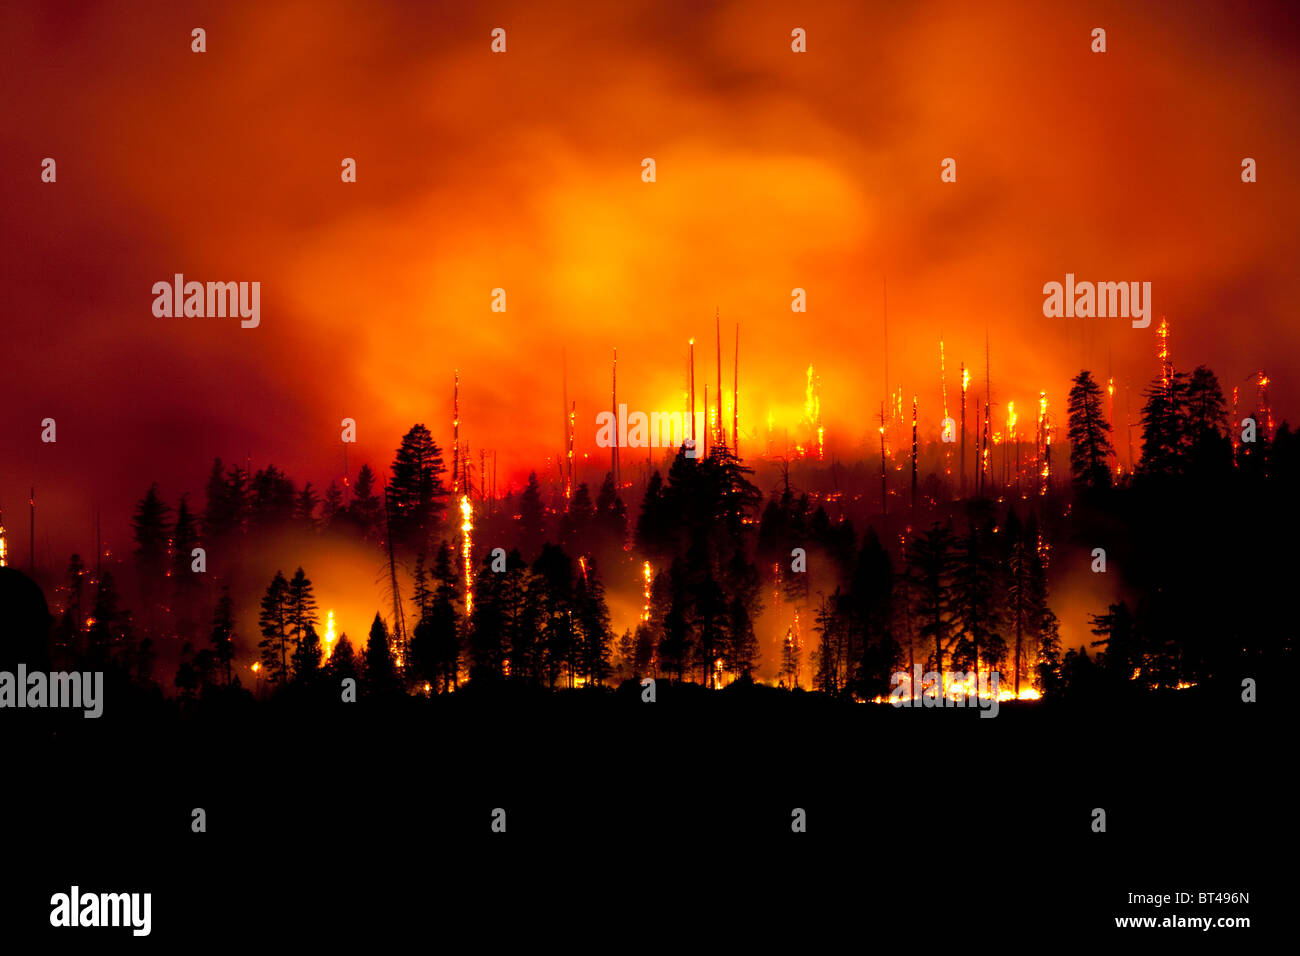 2009 Wildfire in Yosemite National Park - Stock Image